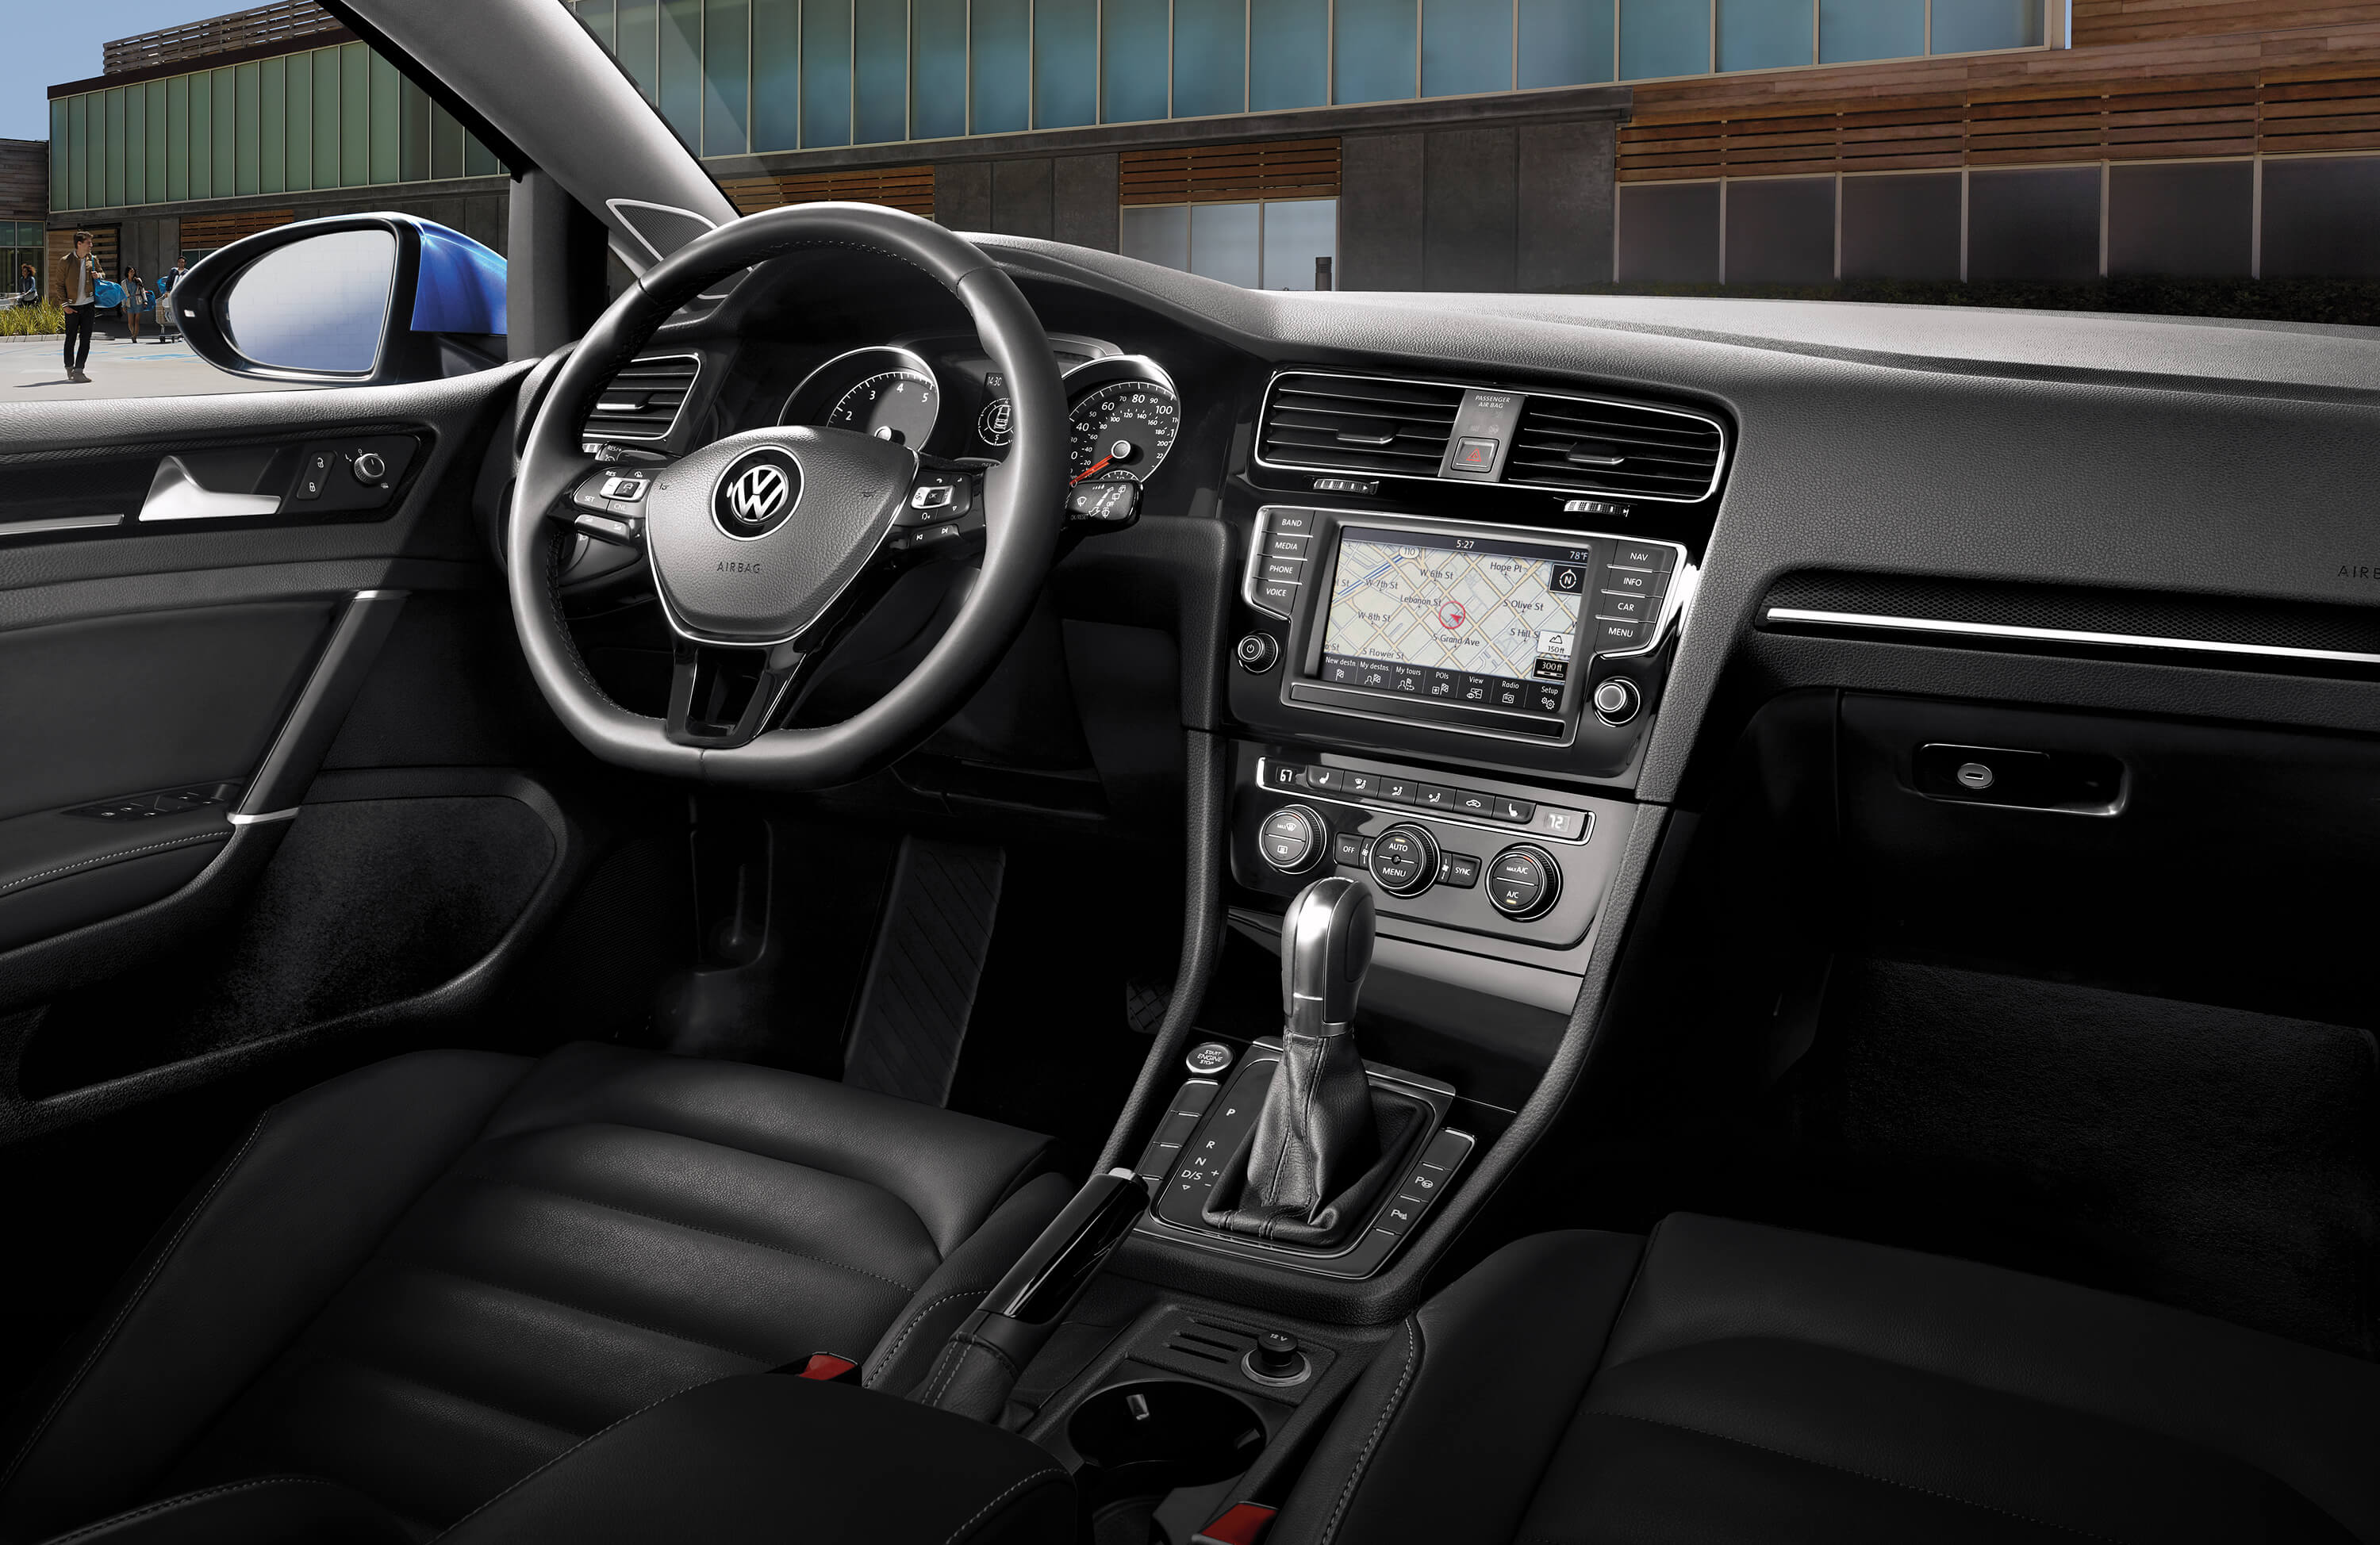 New Vw Golf Lease And Finance Offers In San Juan Capistrano Ca